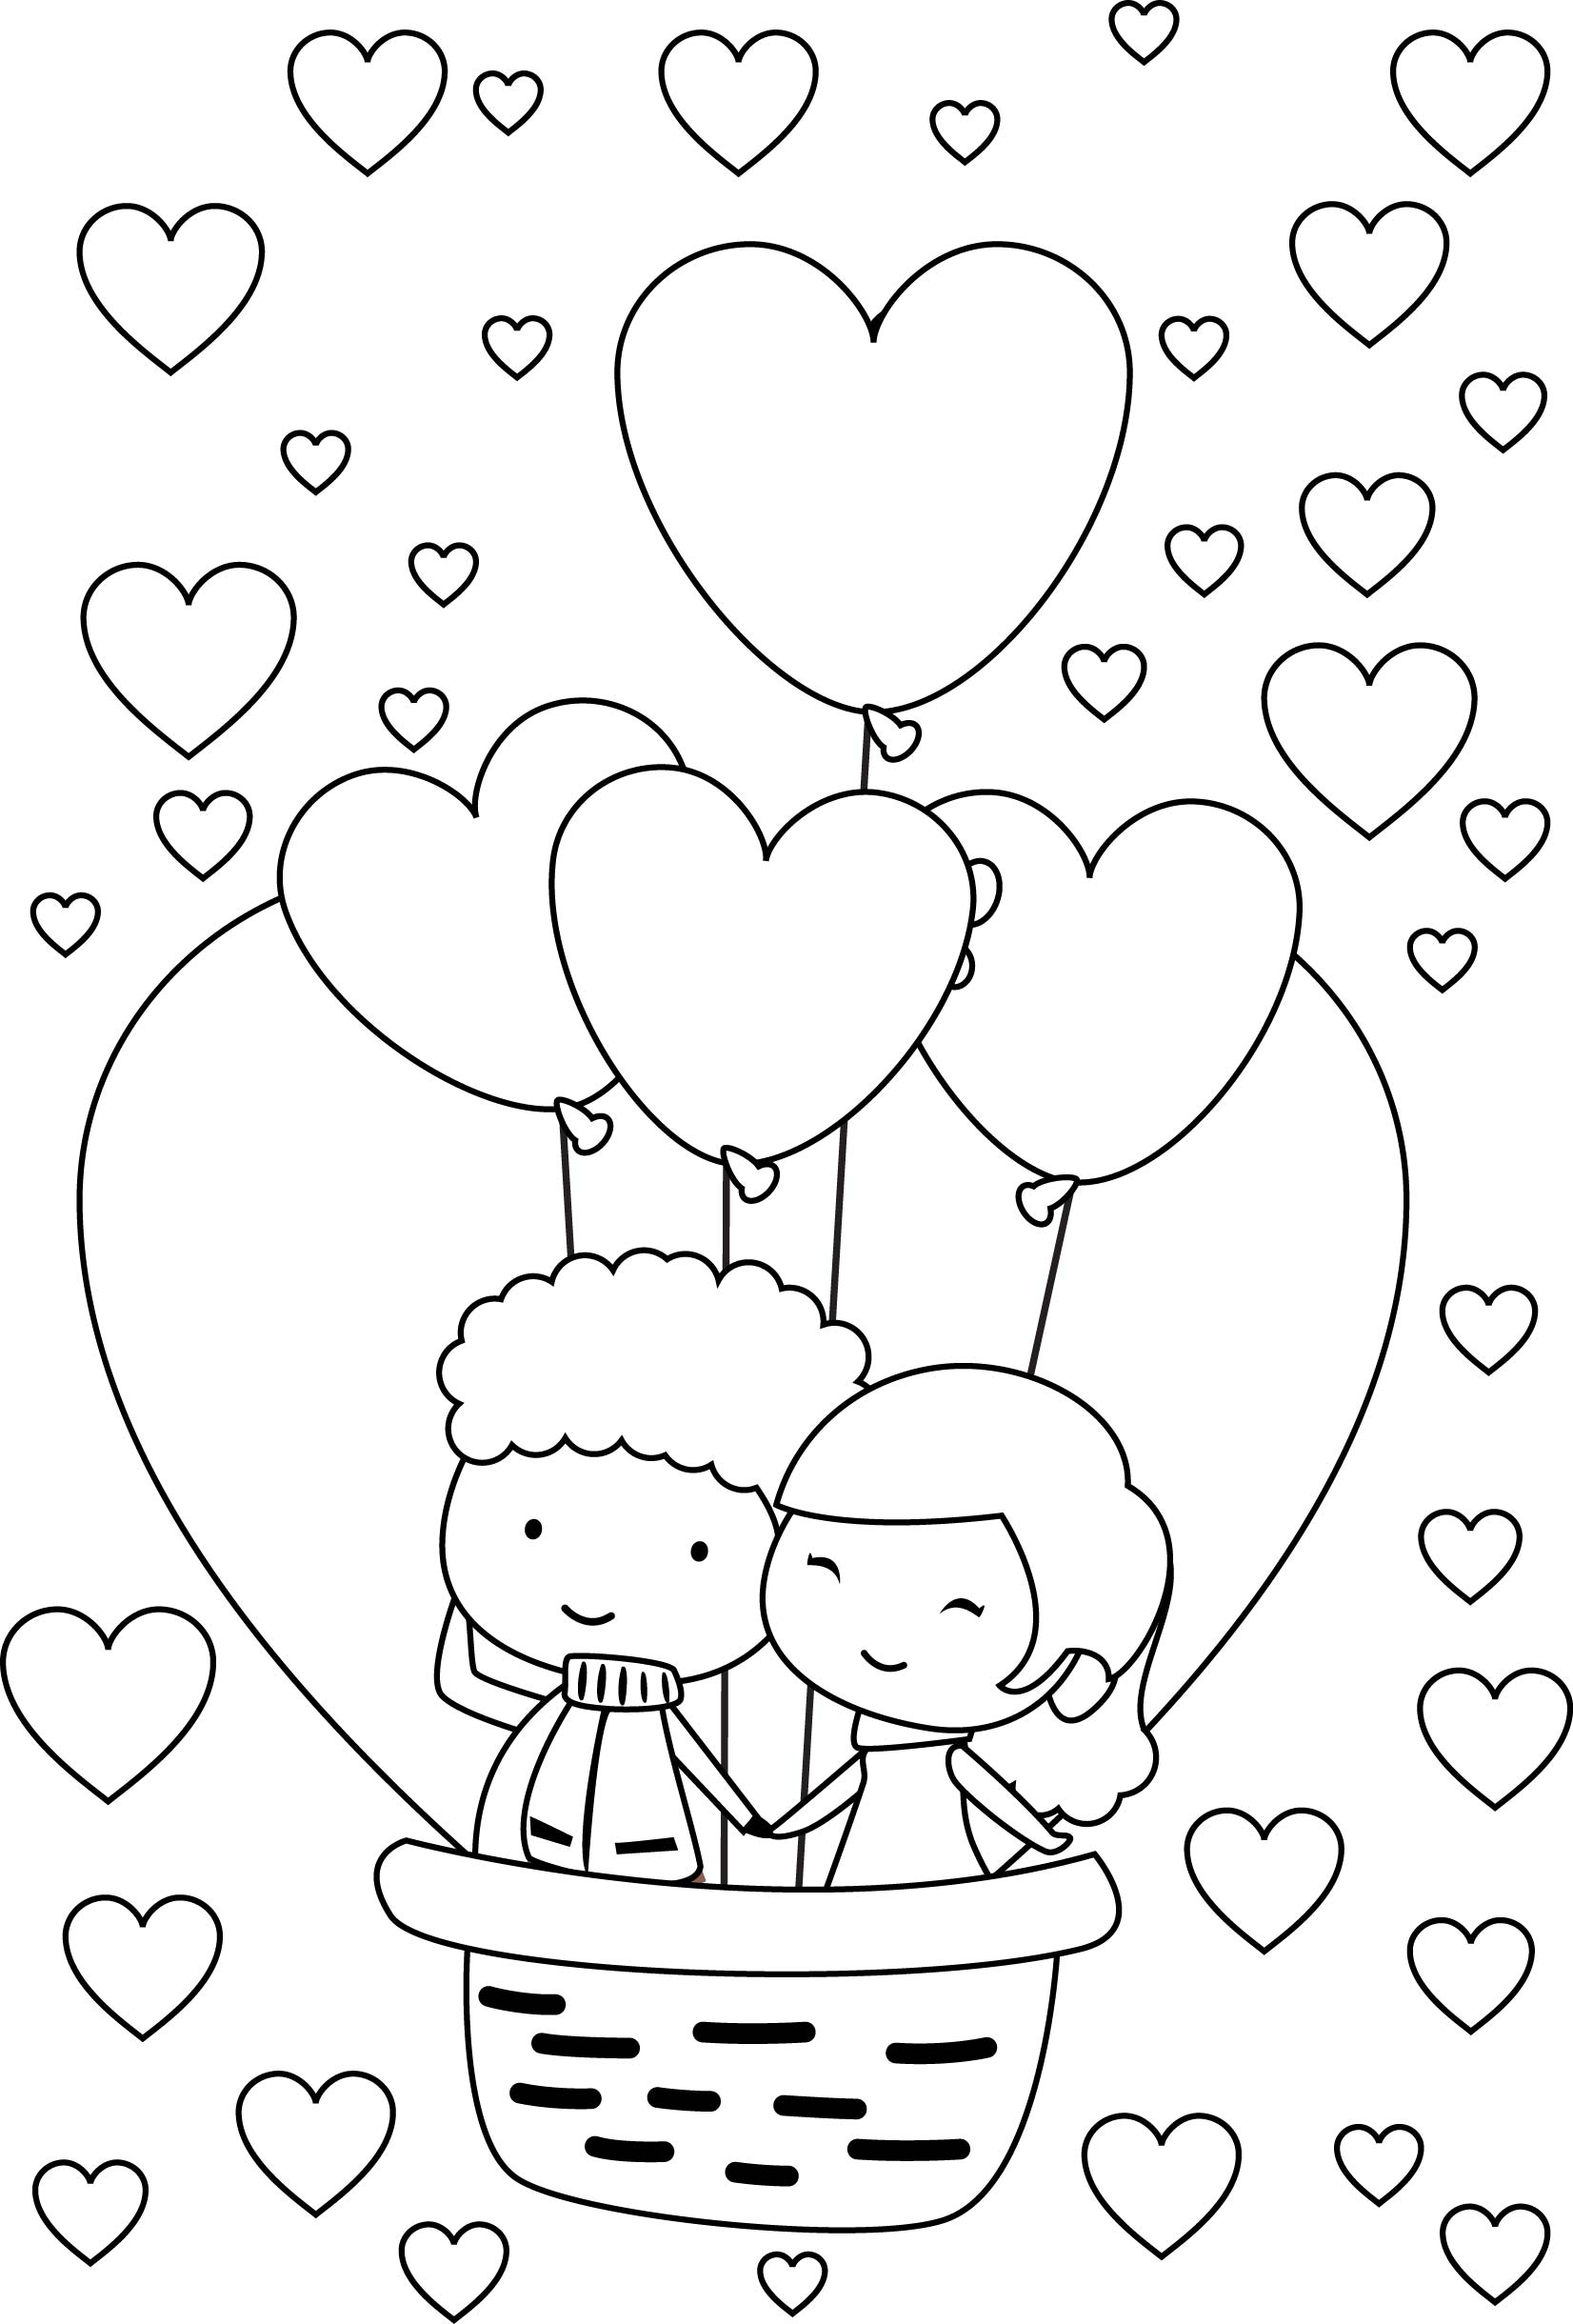 Printable Love Coloring Pages For Adults Coloring Panda within ...   2440x1652